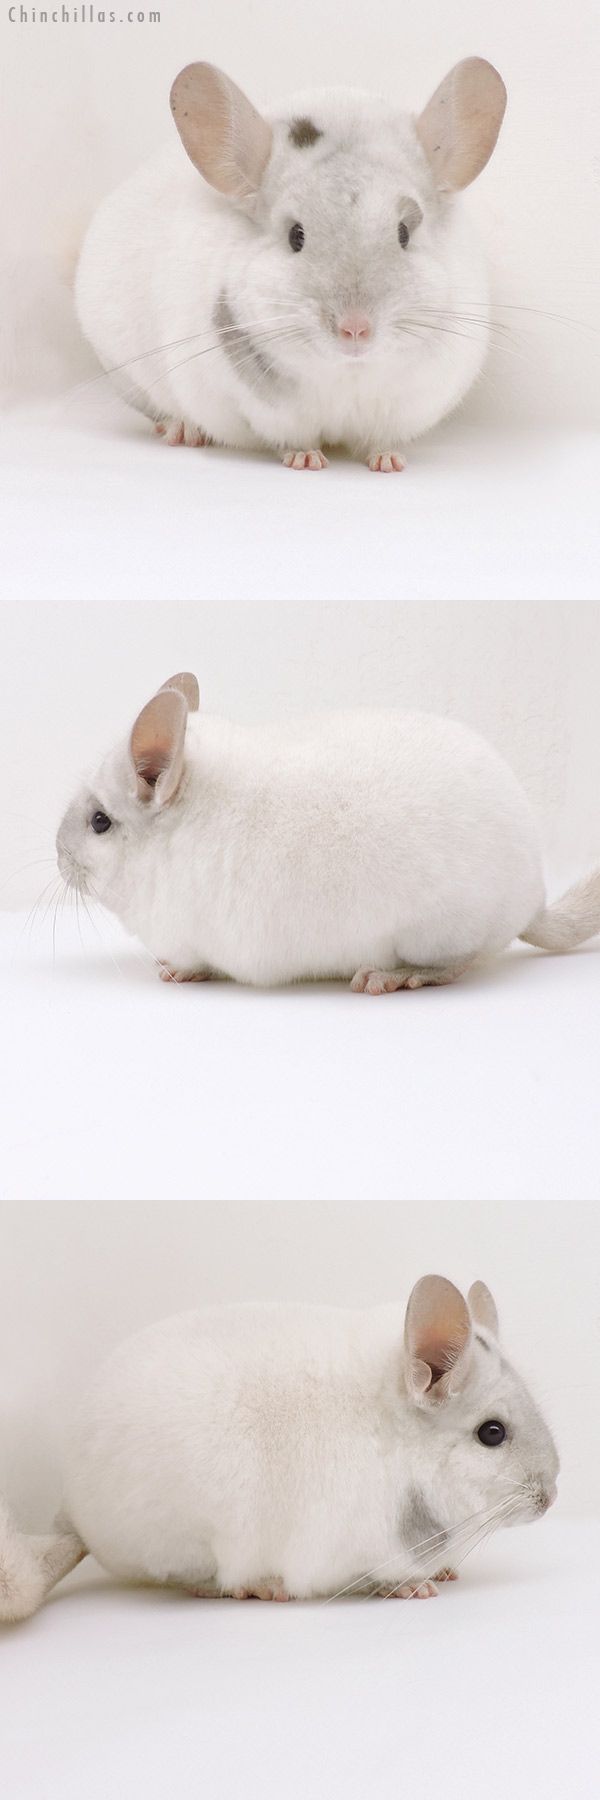 19238 Premium Production Quality Unique Beige and White Female Chinchilla